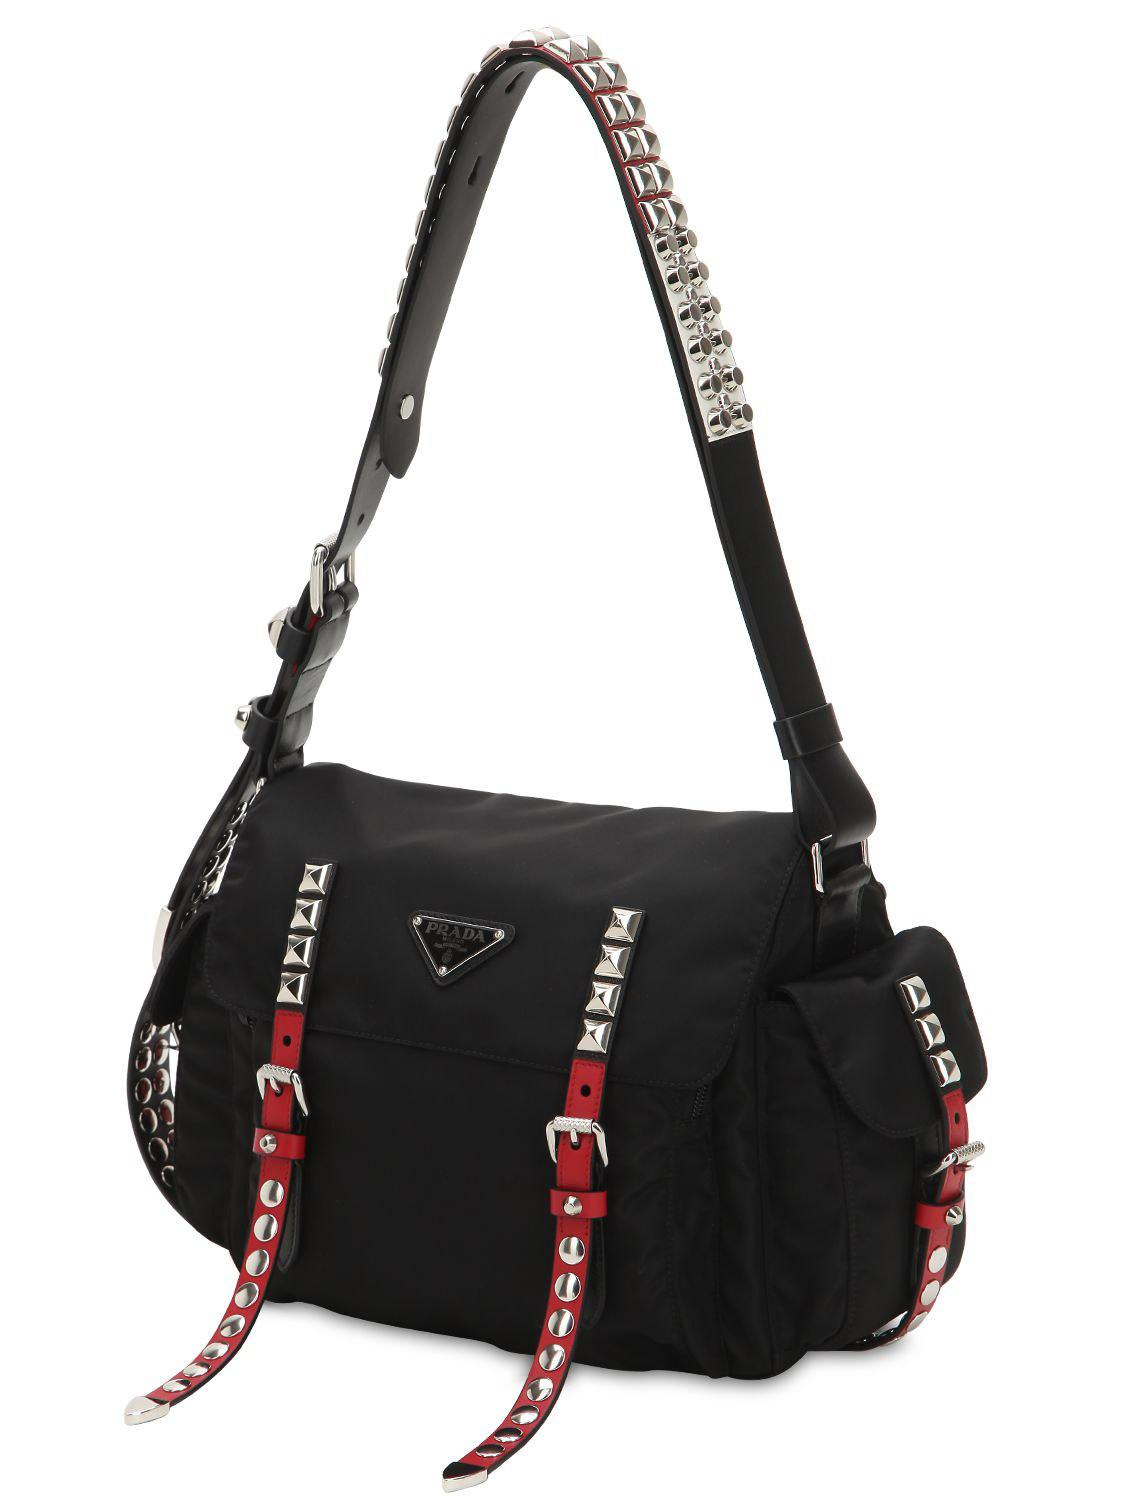 db05bc1c69d3 Prada - Black New Vela Nylon Bag W  Studs - Lyst. View fullscreen